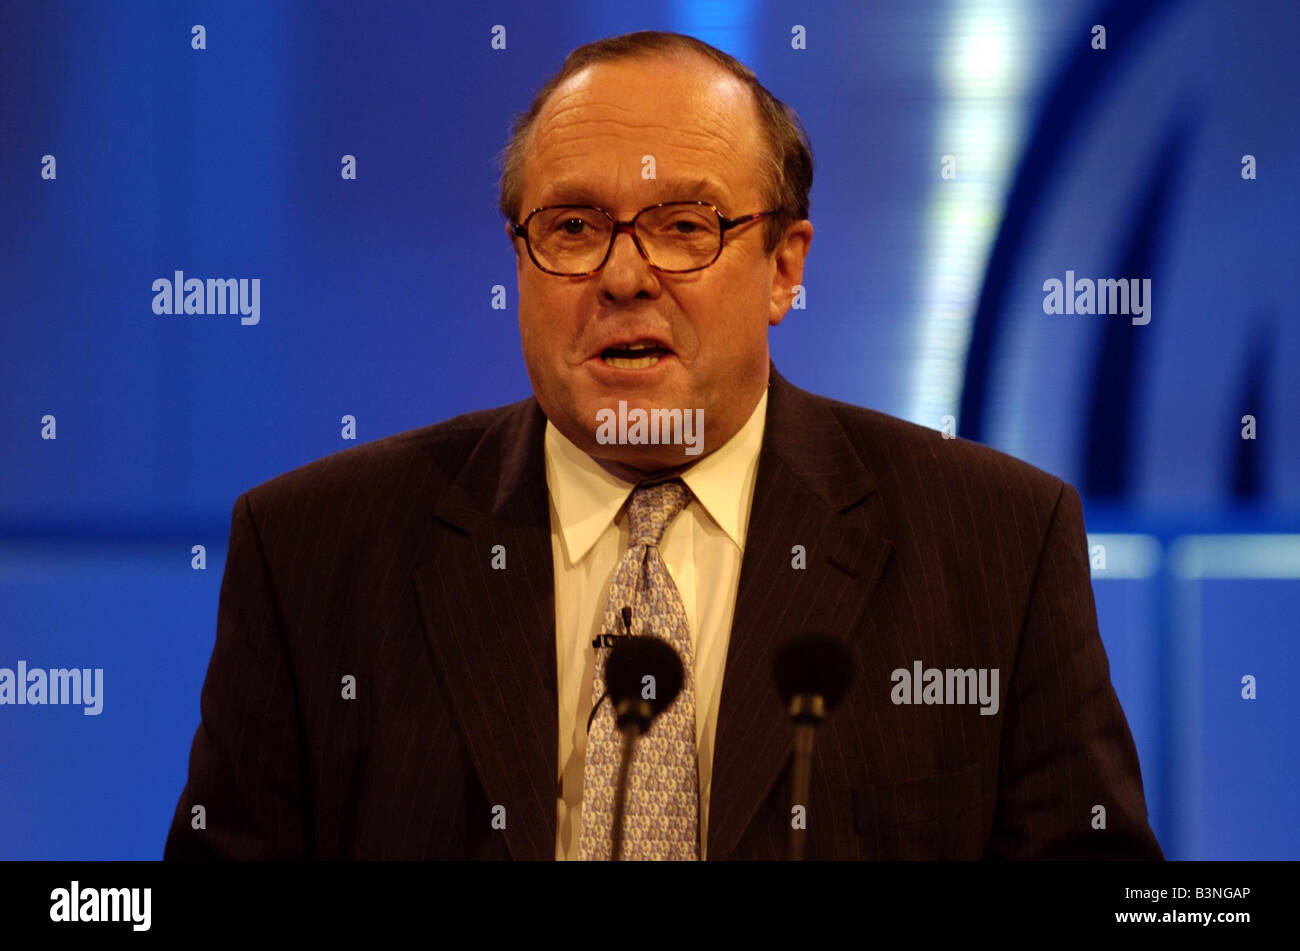 Michael Ancram at Tory Party Conference in Bournemouth 2004 - Stock Image